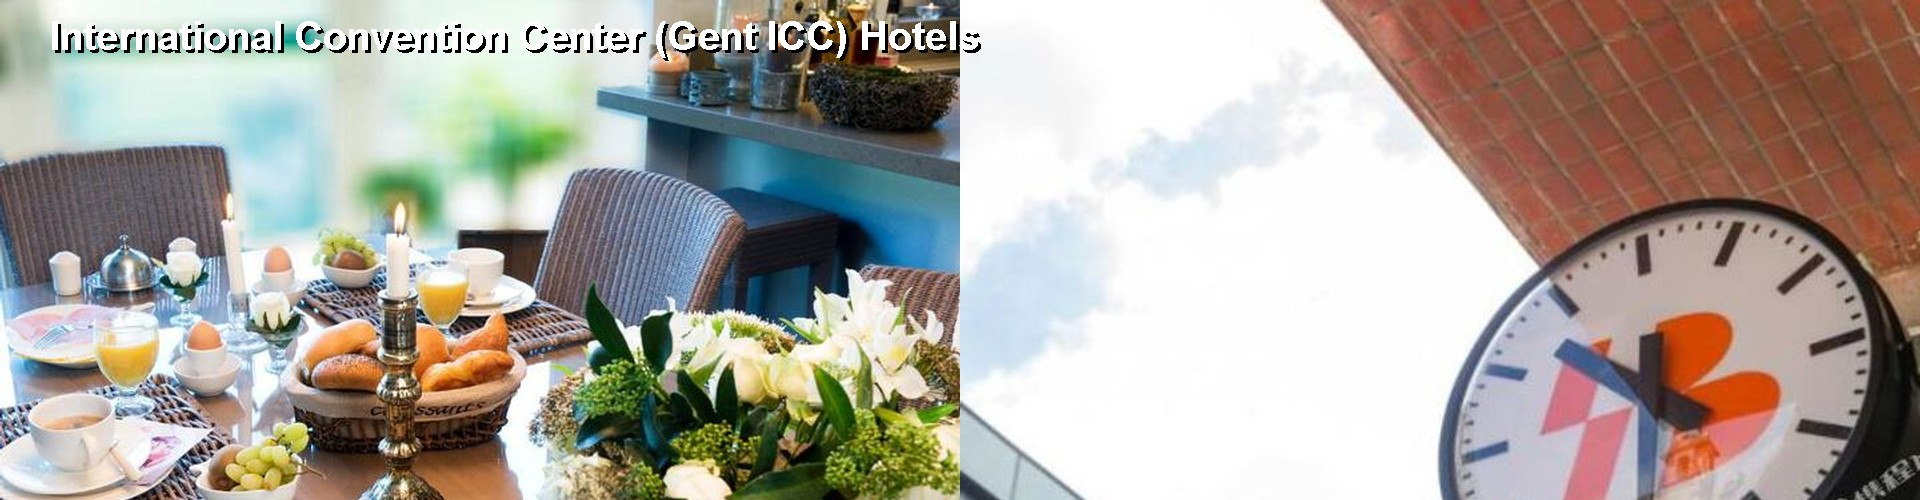 5 Best Hotels near International Convention Center (Gent ICC)